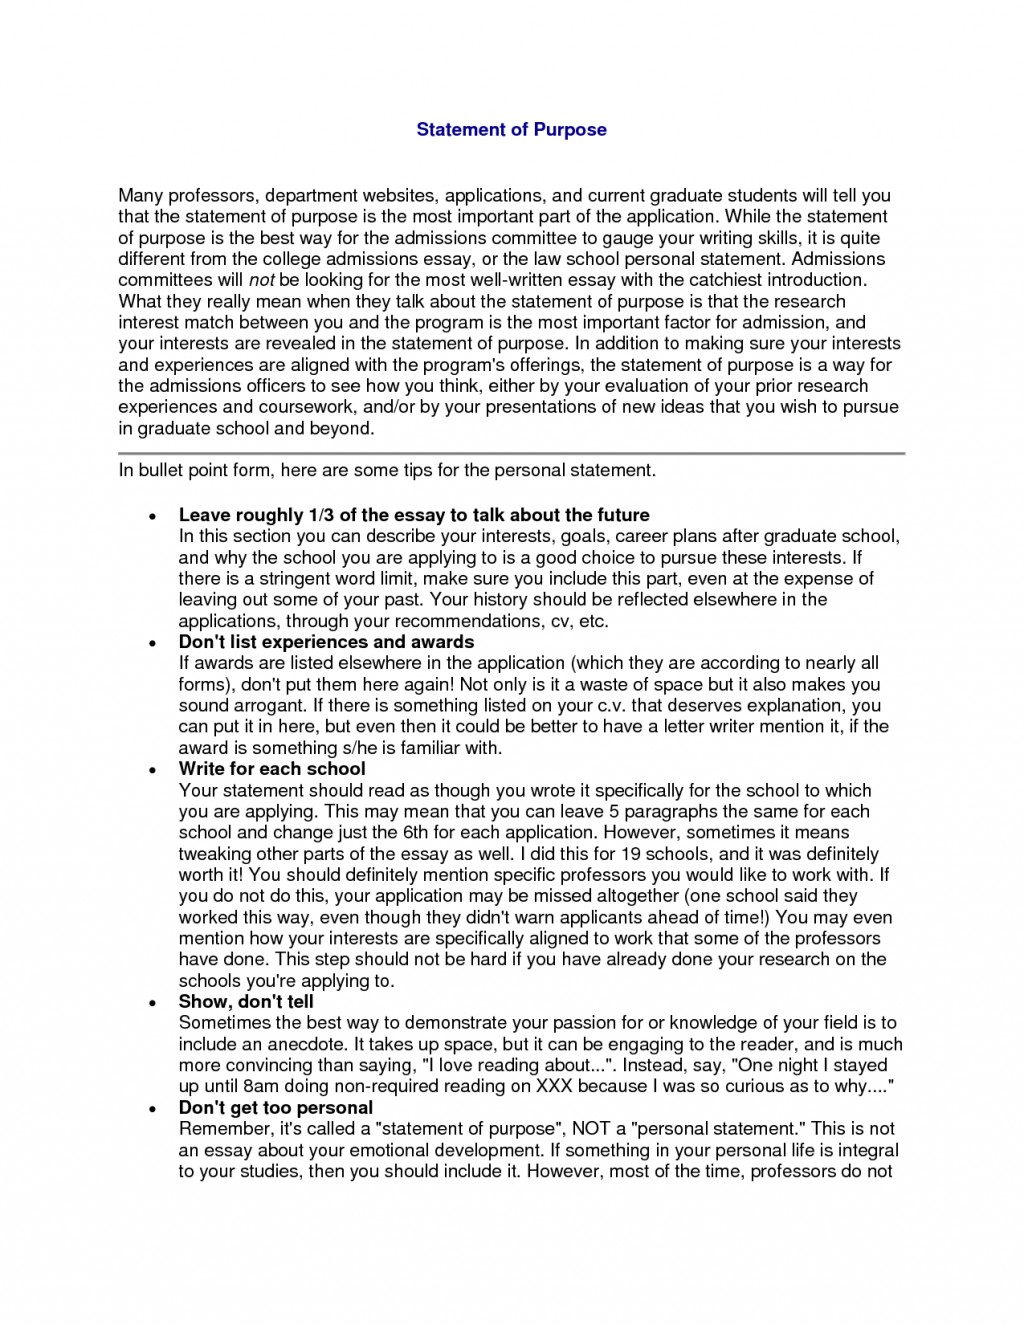 003 Statement Of Purpose Sample Essays Essay Example Graduate School Fearsome Education Psychology Mba Large